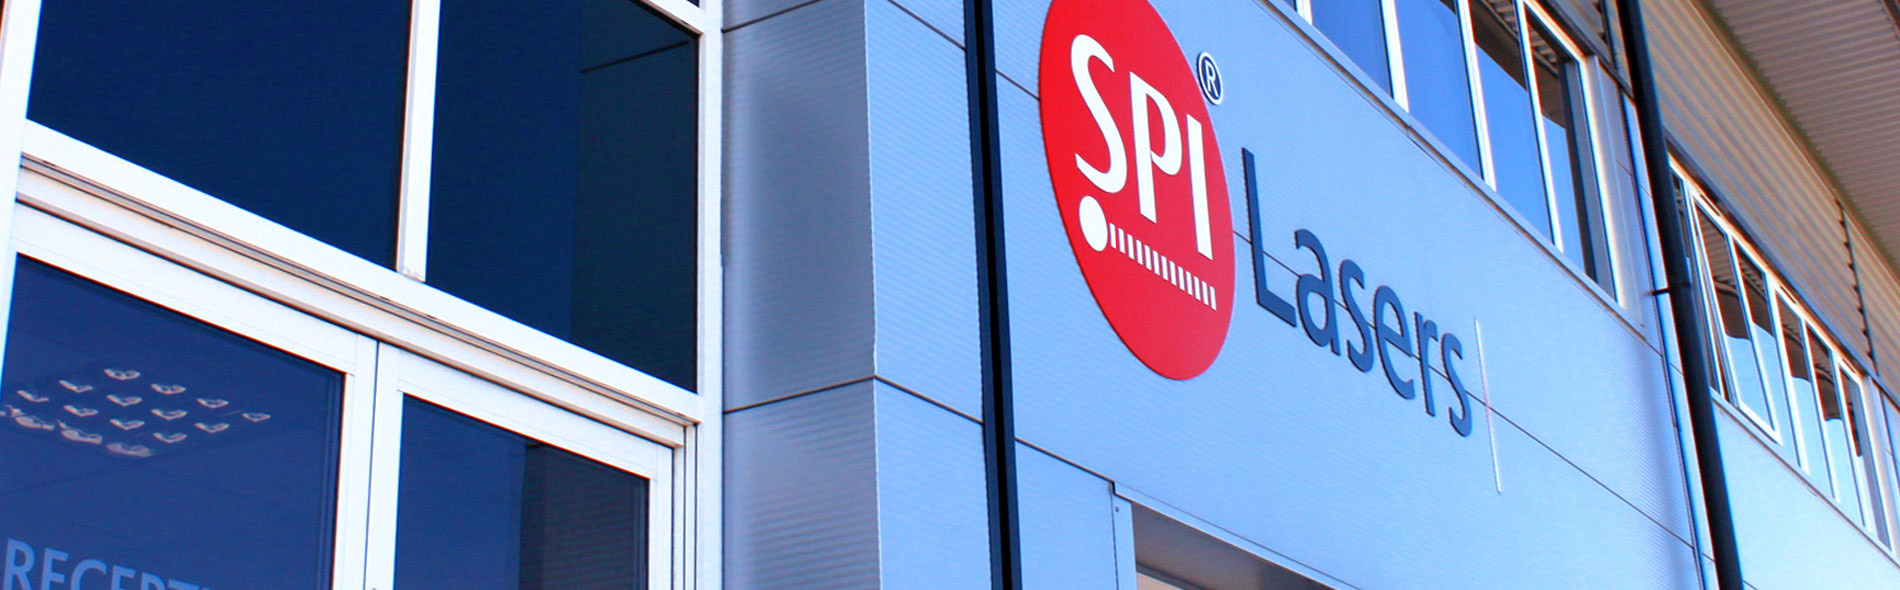 SPI acquires JK Lasers – One company, stronger together.